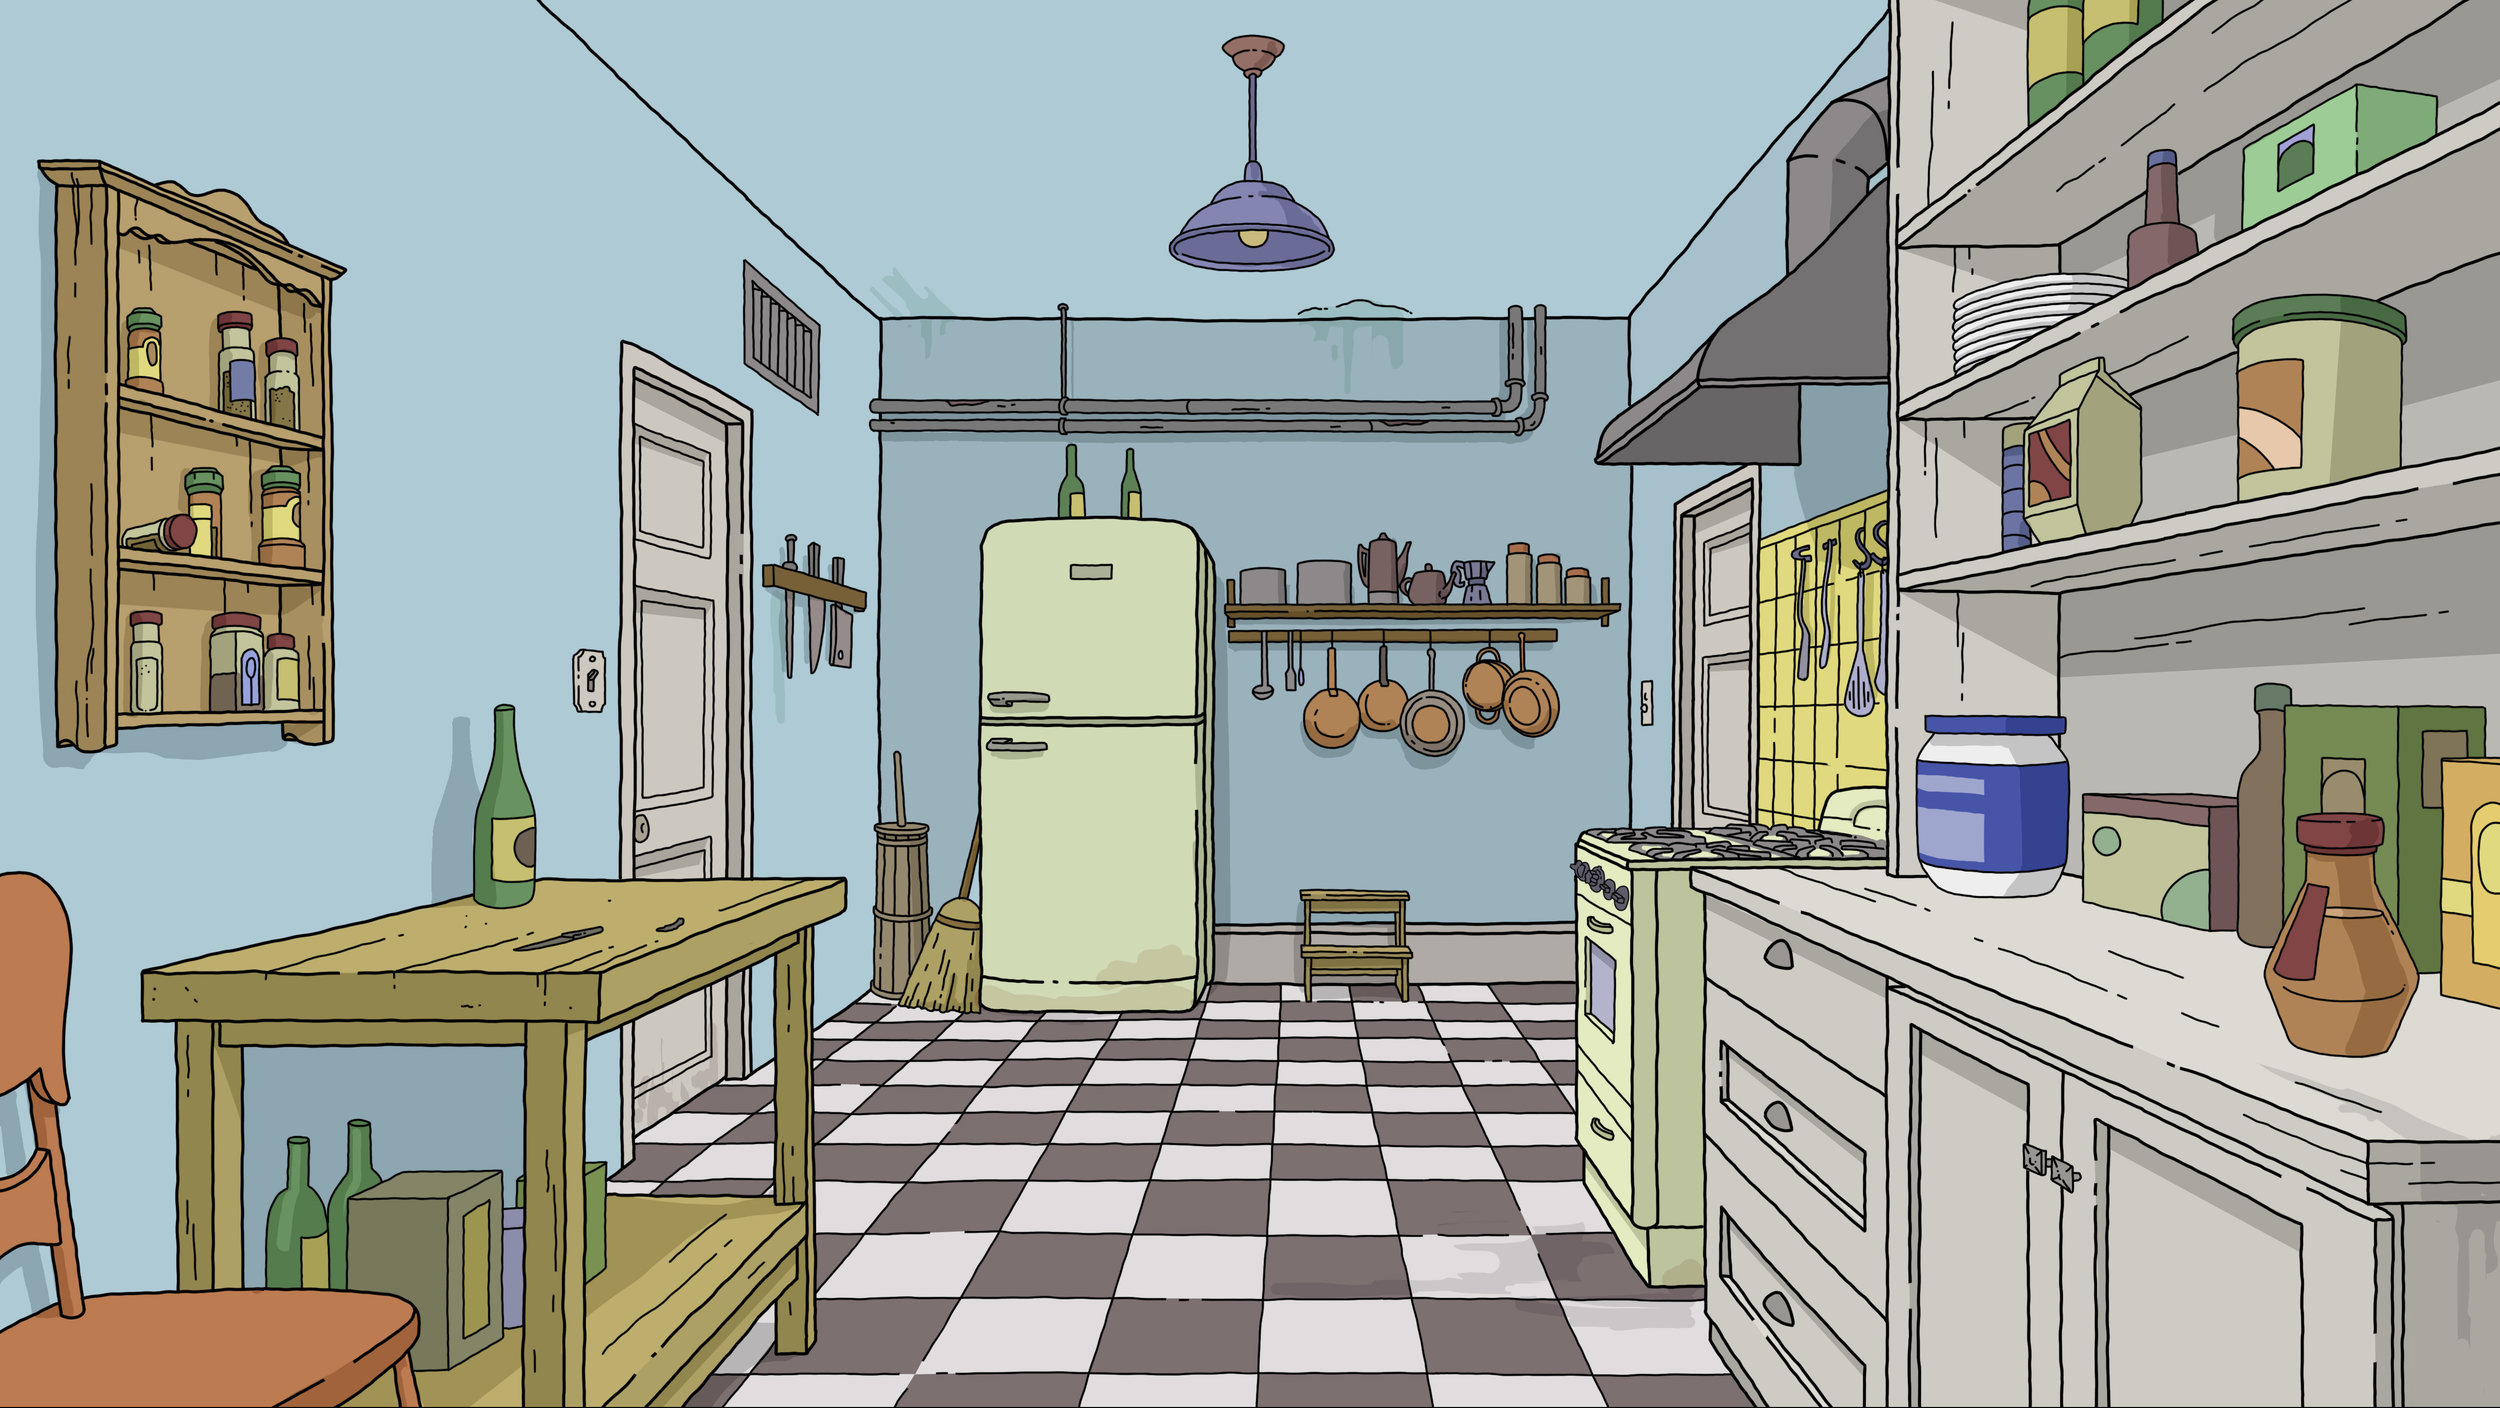 2ASA19_BG_IntFischoederMansion-KitchenReverse_RF_v03.jpg